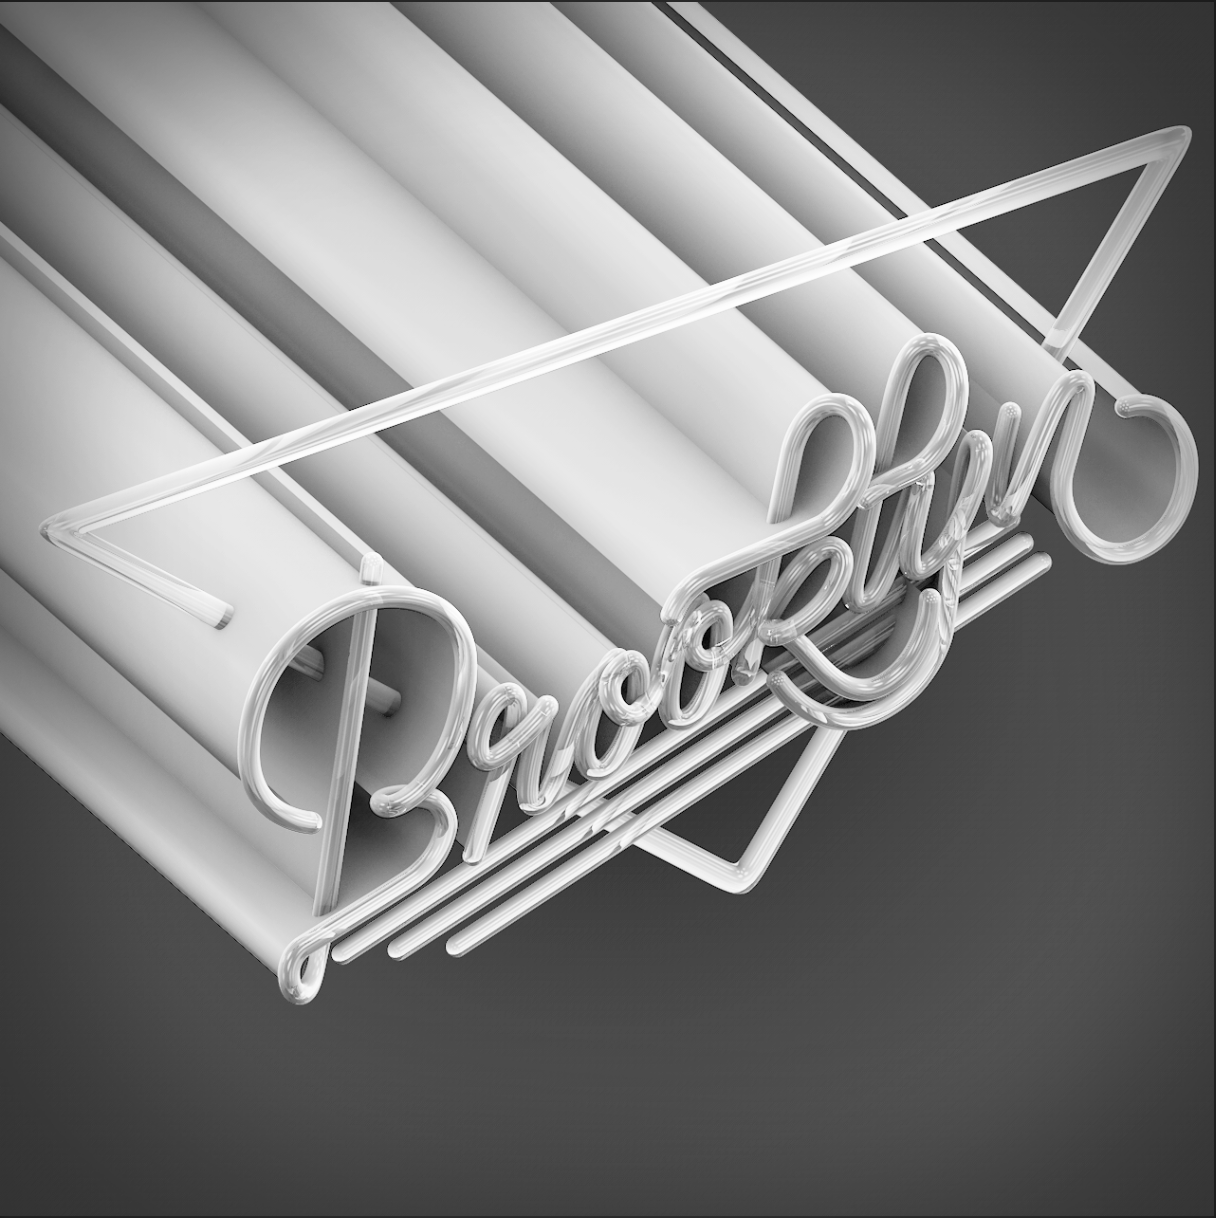 Brooklyn_BW-lettering-isometric-by-Noah-Camp.png